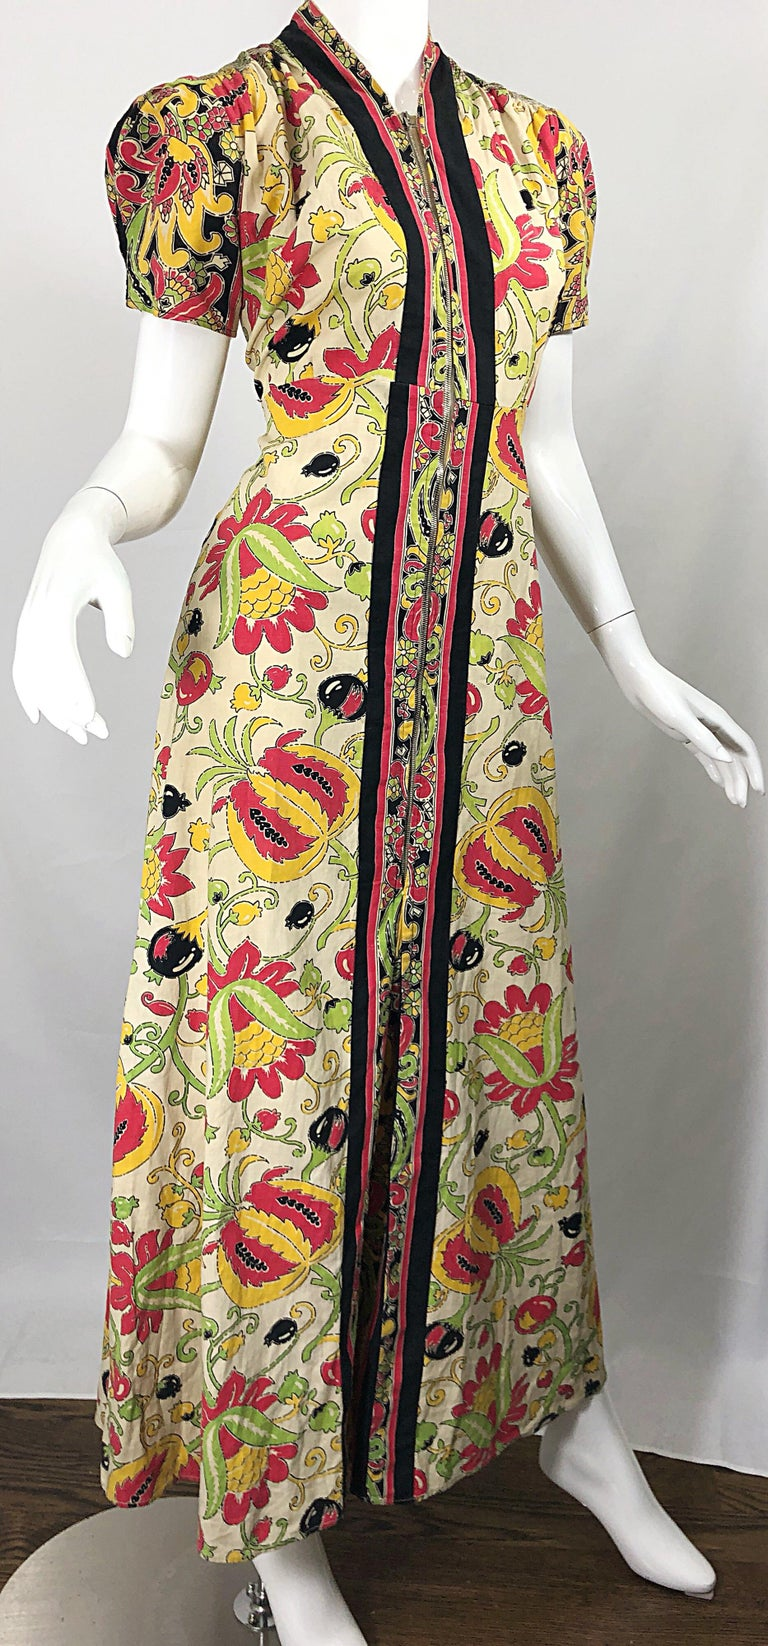 Amazing 1940s Botanical Asian Inspired Paisley Cotton + Linen 40s Maxi Dress For Sale 4